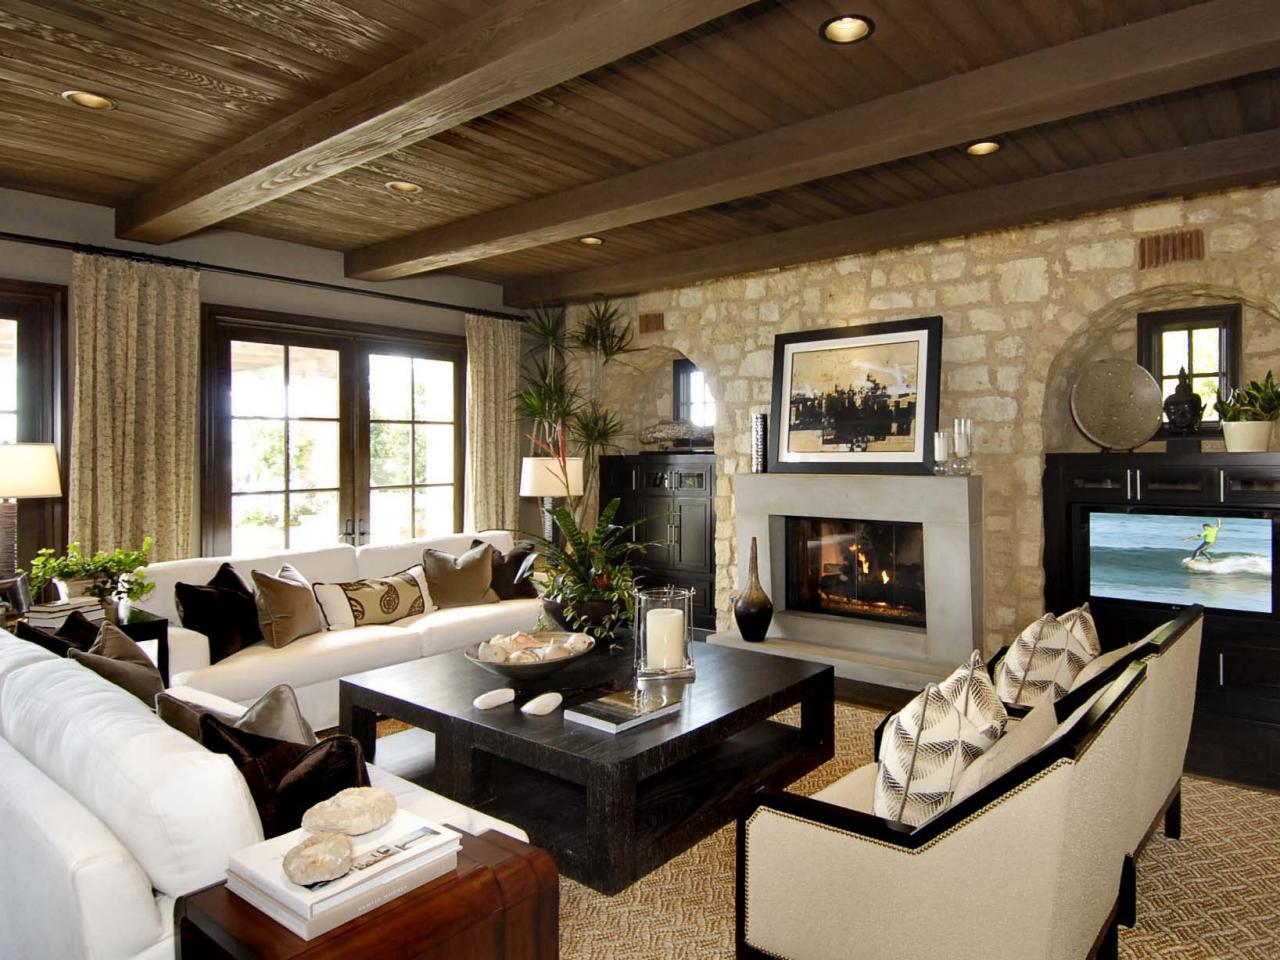 Wooden Ceiling Designs For Living Room Great Ideas For Upgrading Your Ceiling Hgtvs Decorating